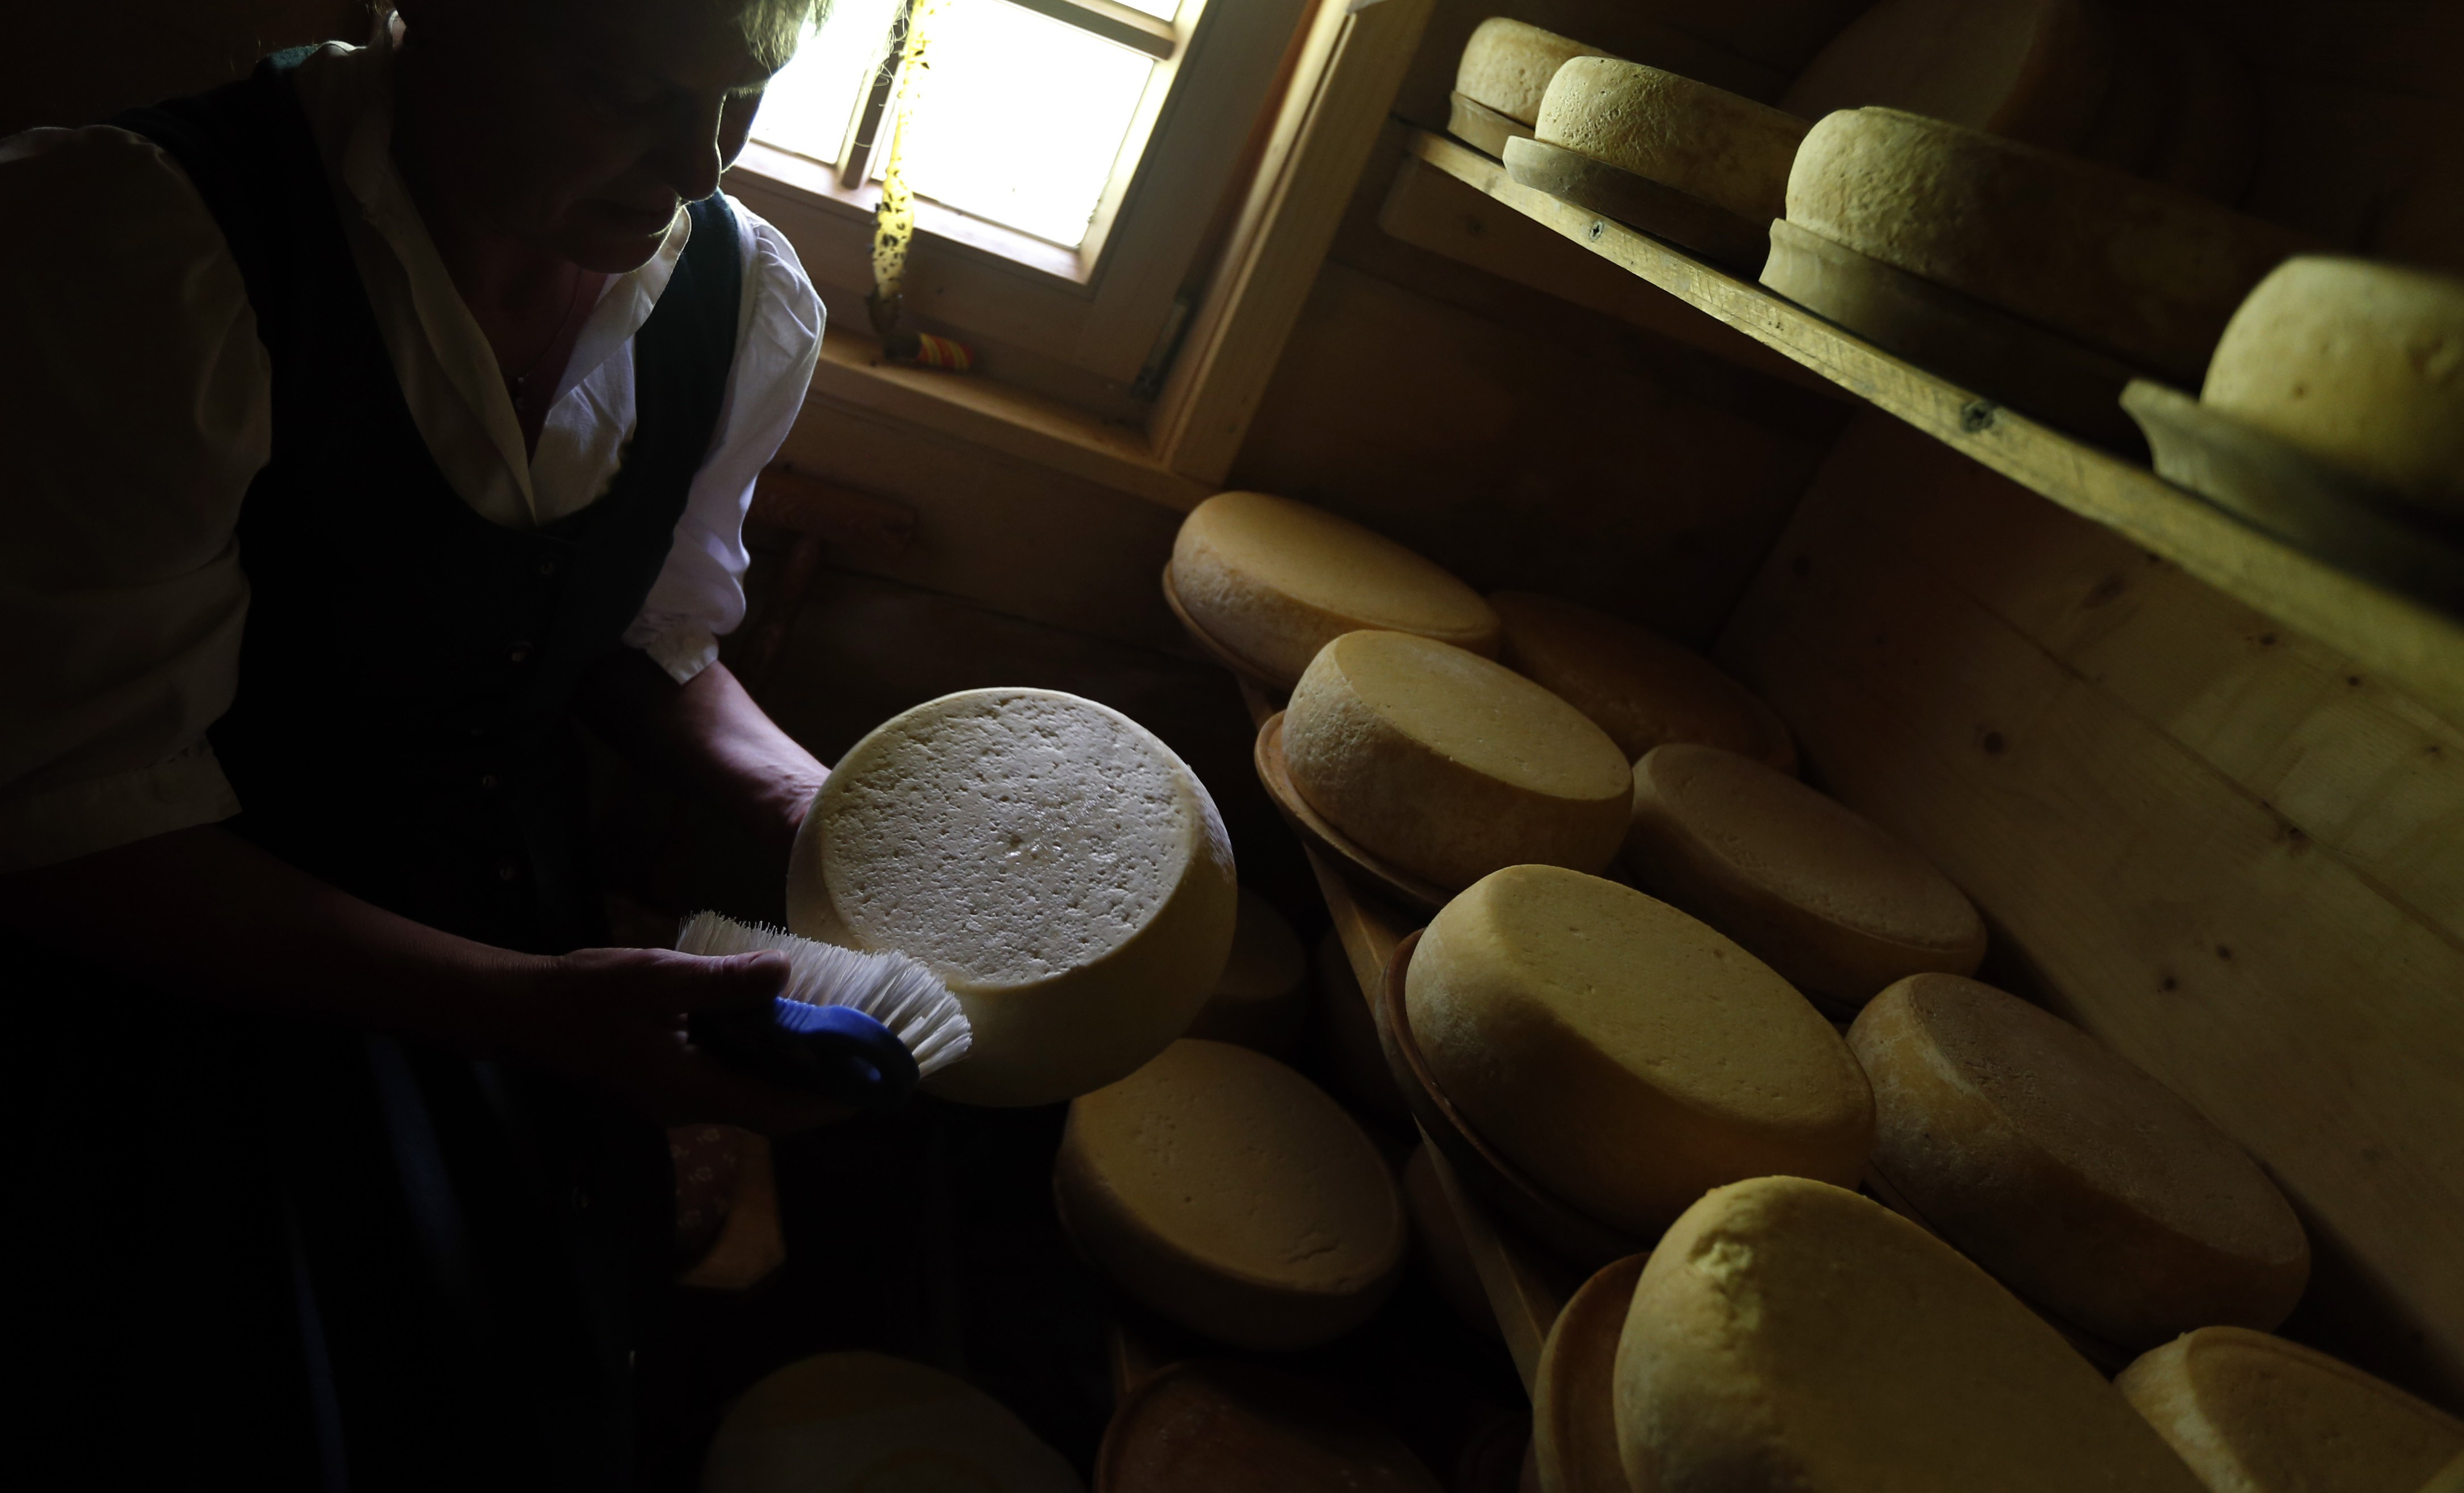 Cheese in Germany